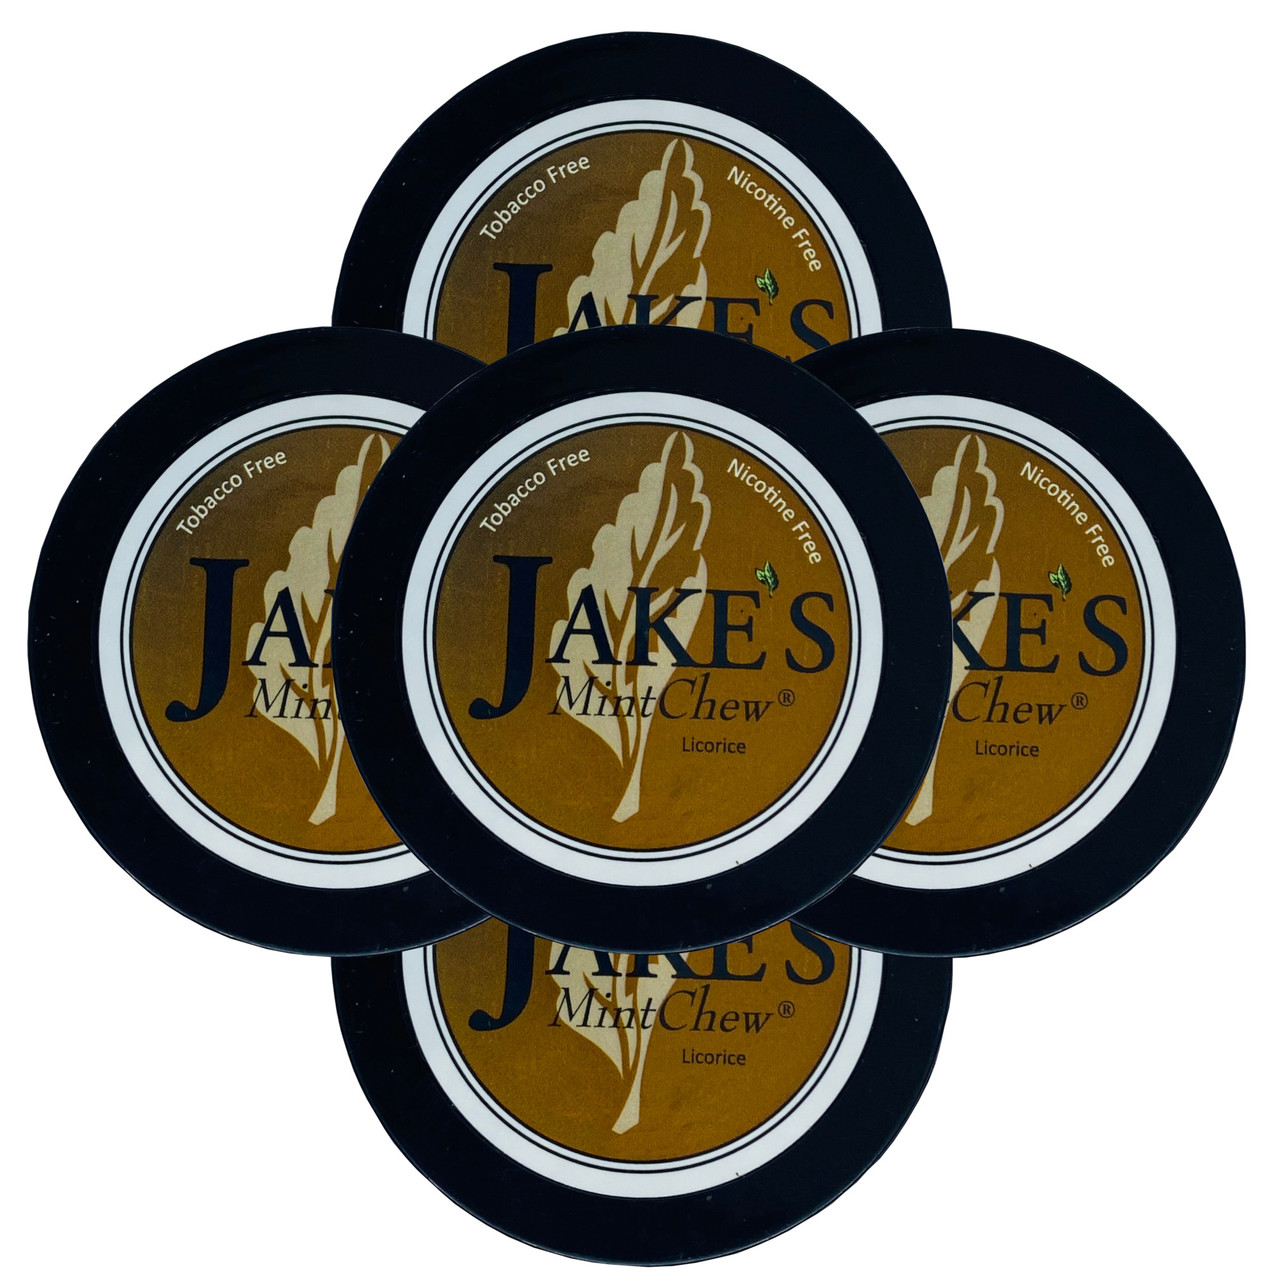 Jake's Mint Chew Licorice 5 Cans